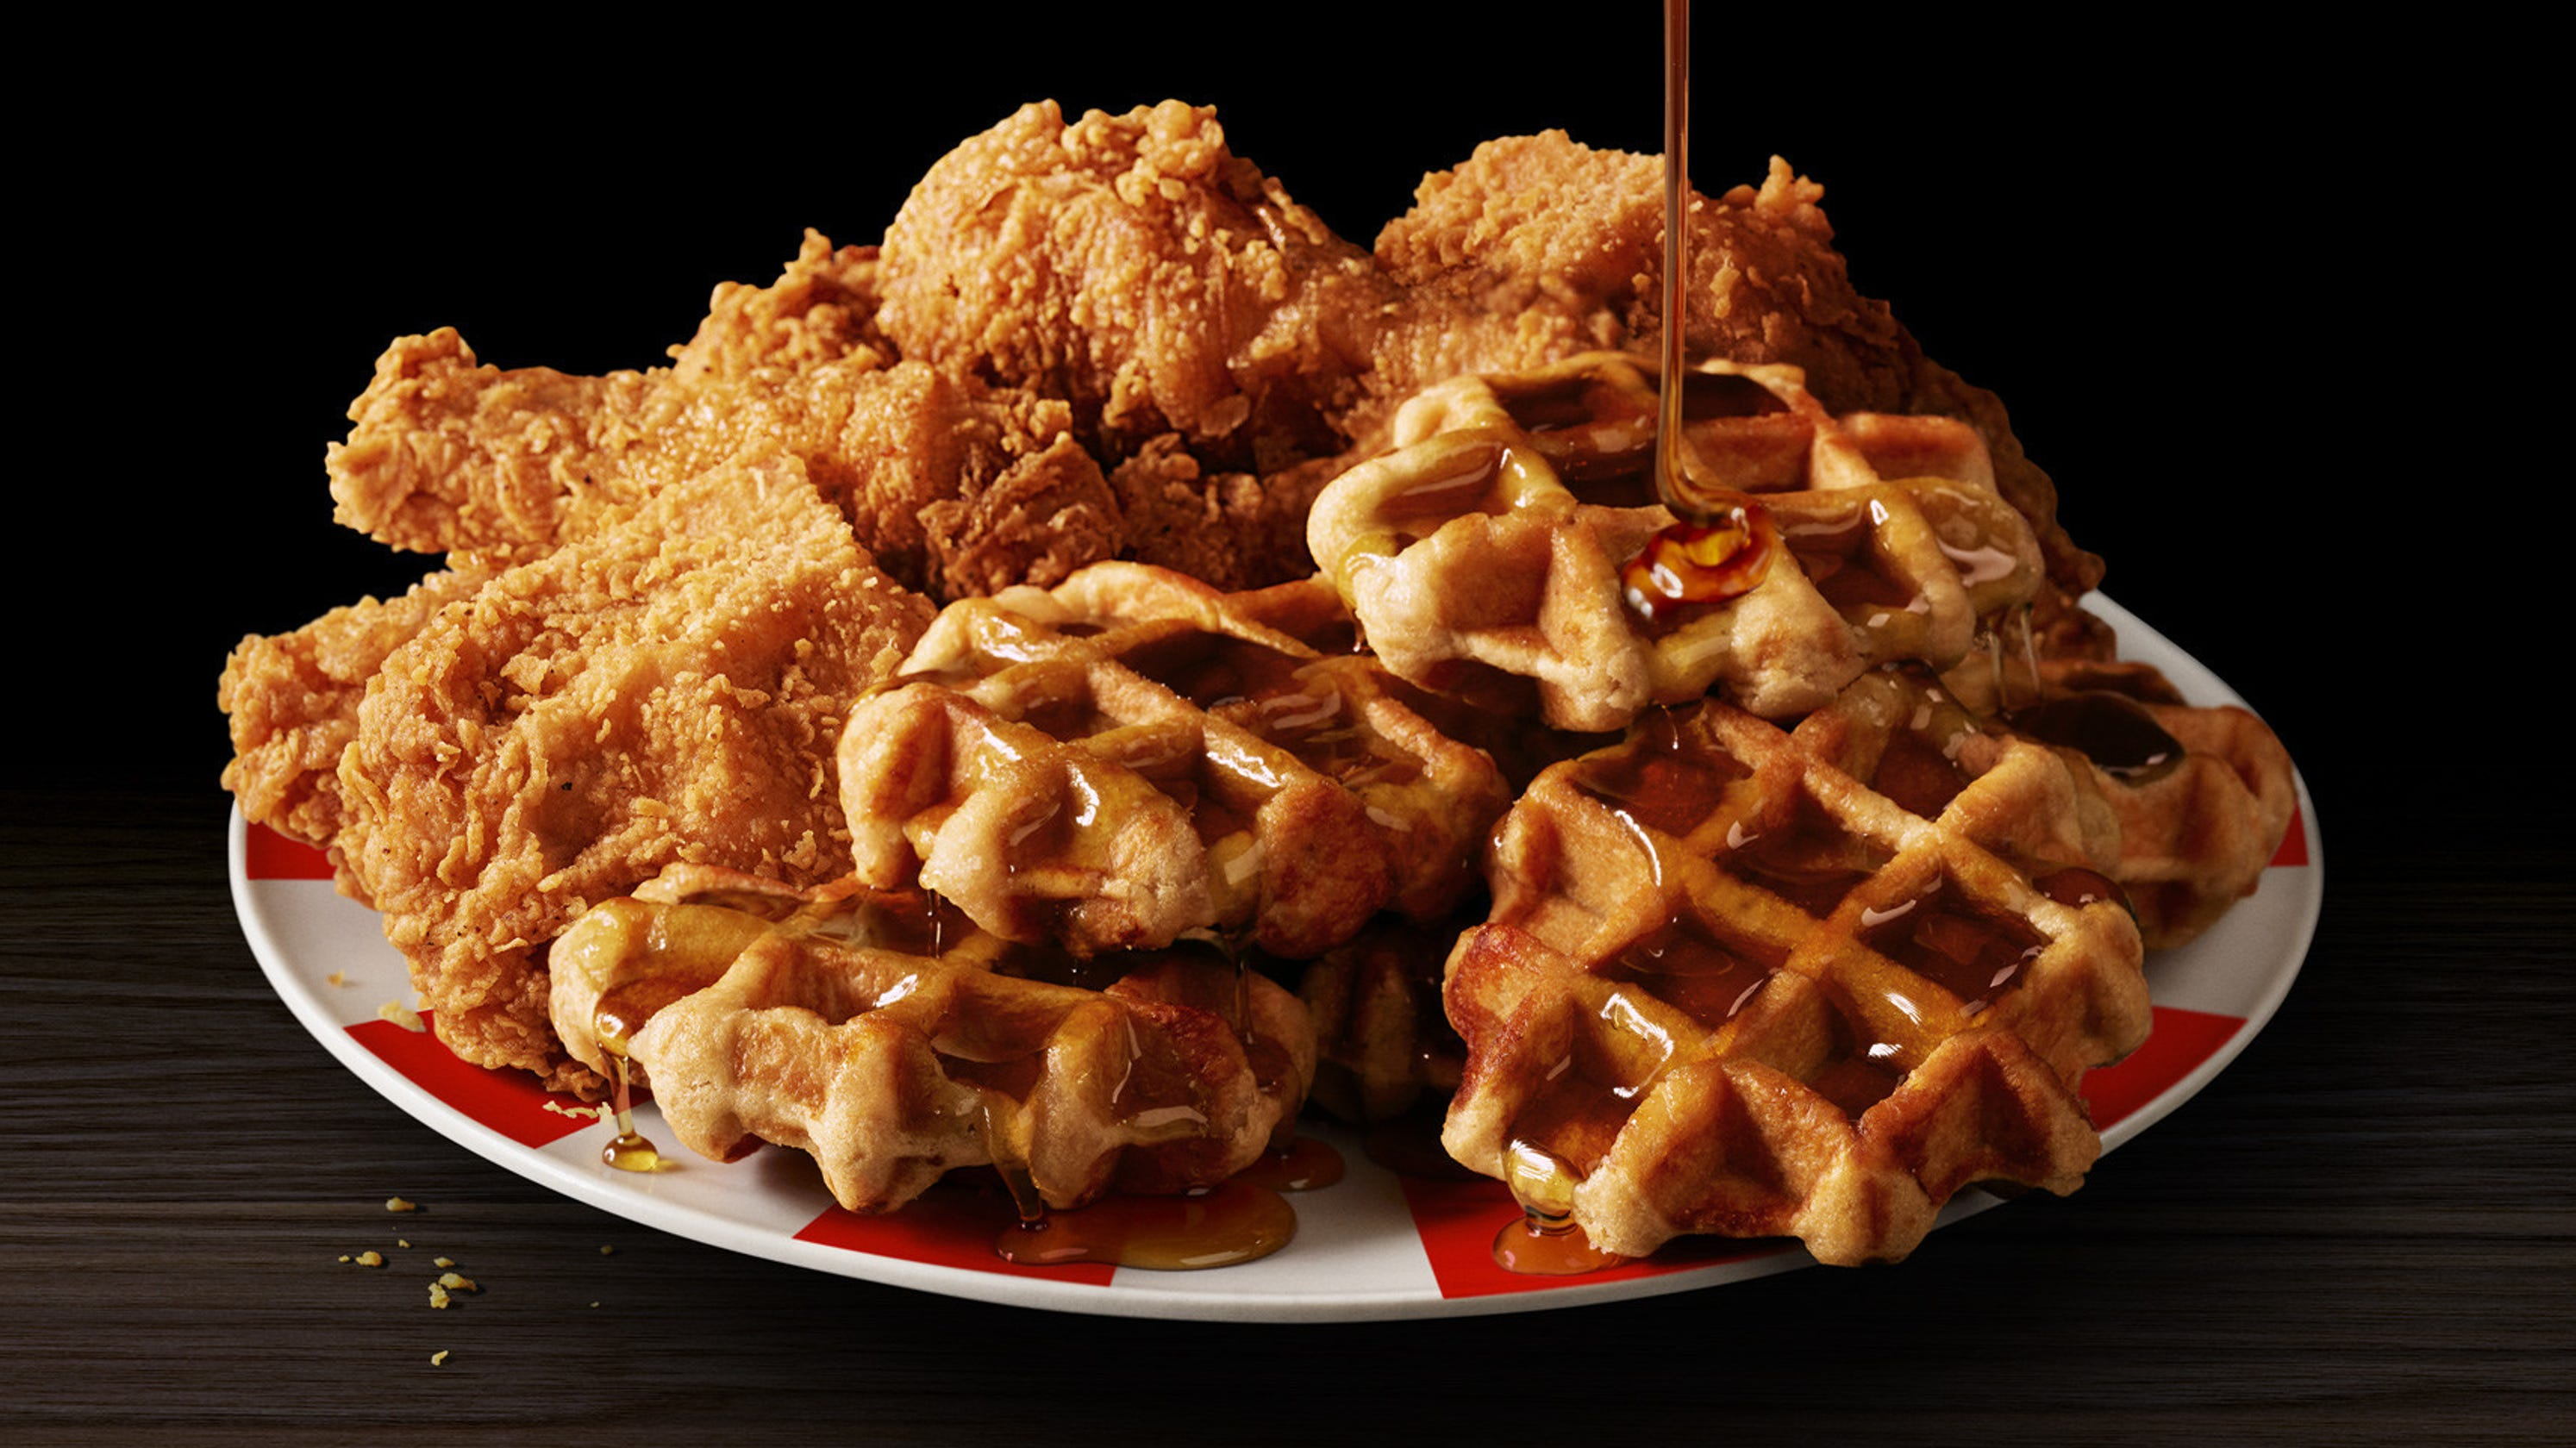 Kfc Chicken And Waffles Is Added To Menu For A Limited Time